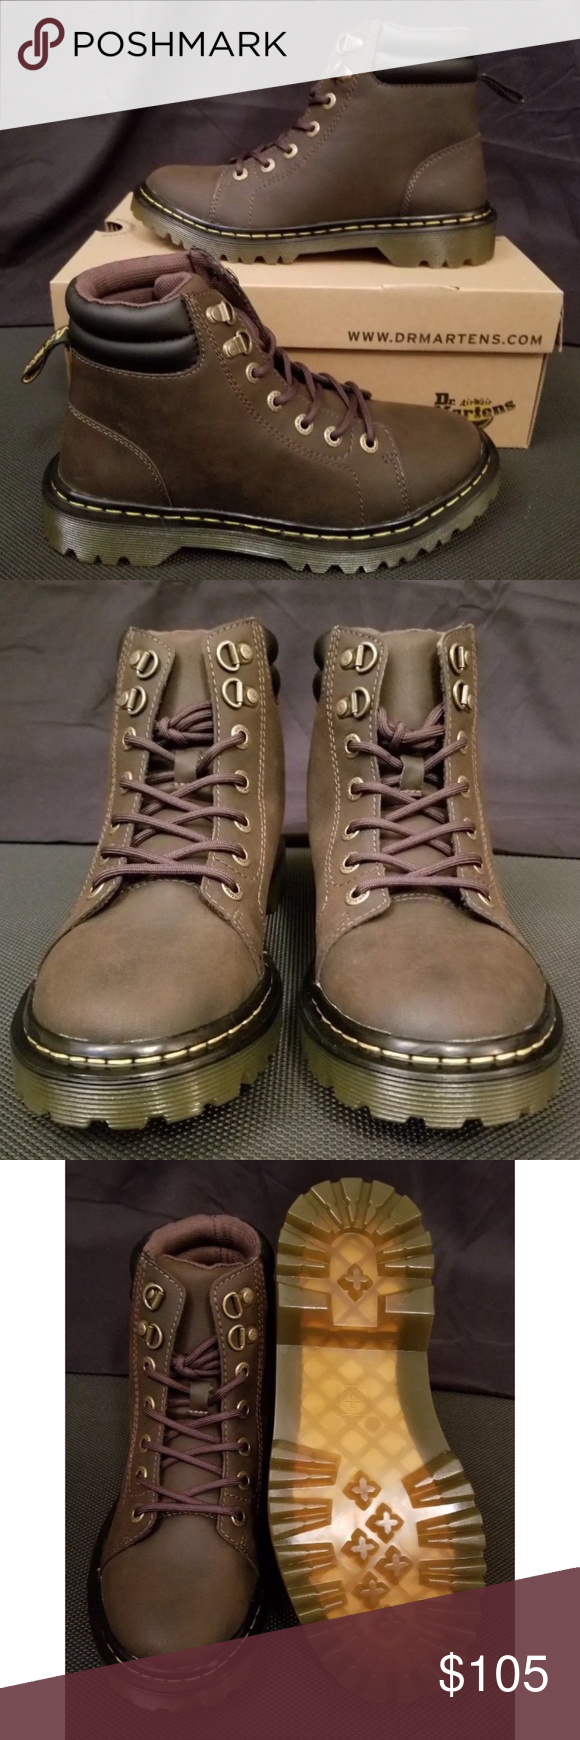 d97f90cd0b6b Dr Martens Faora Boots Premium dark brown leather upper. Lace-up closure  with brand